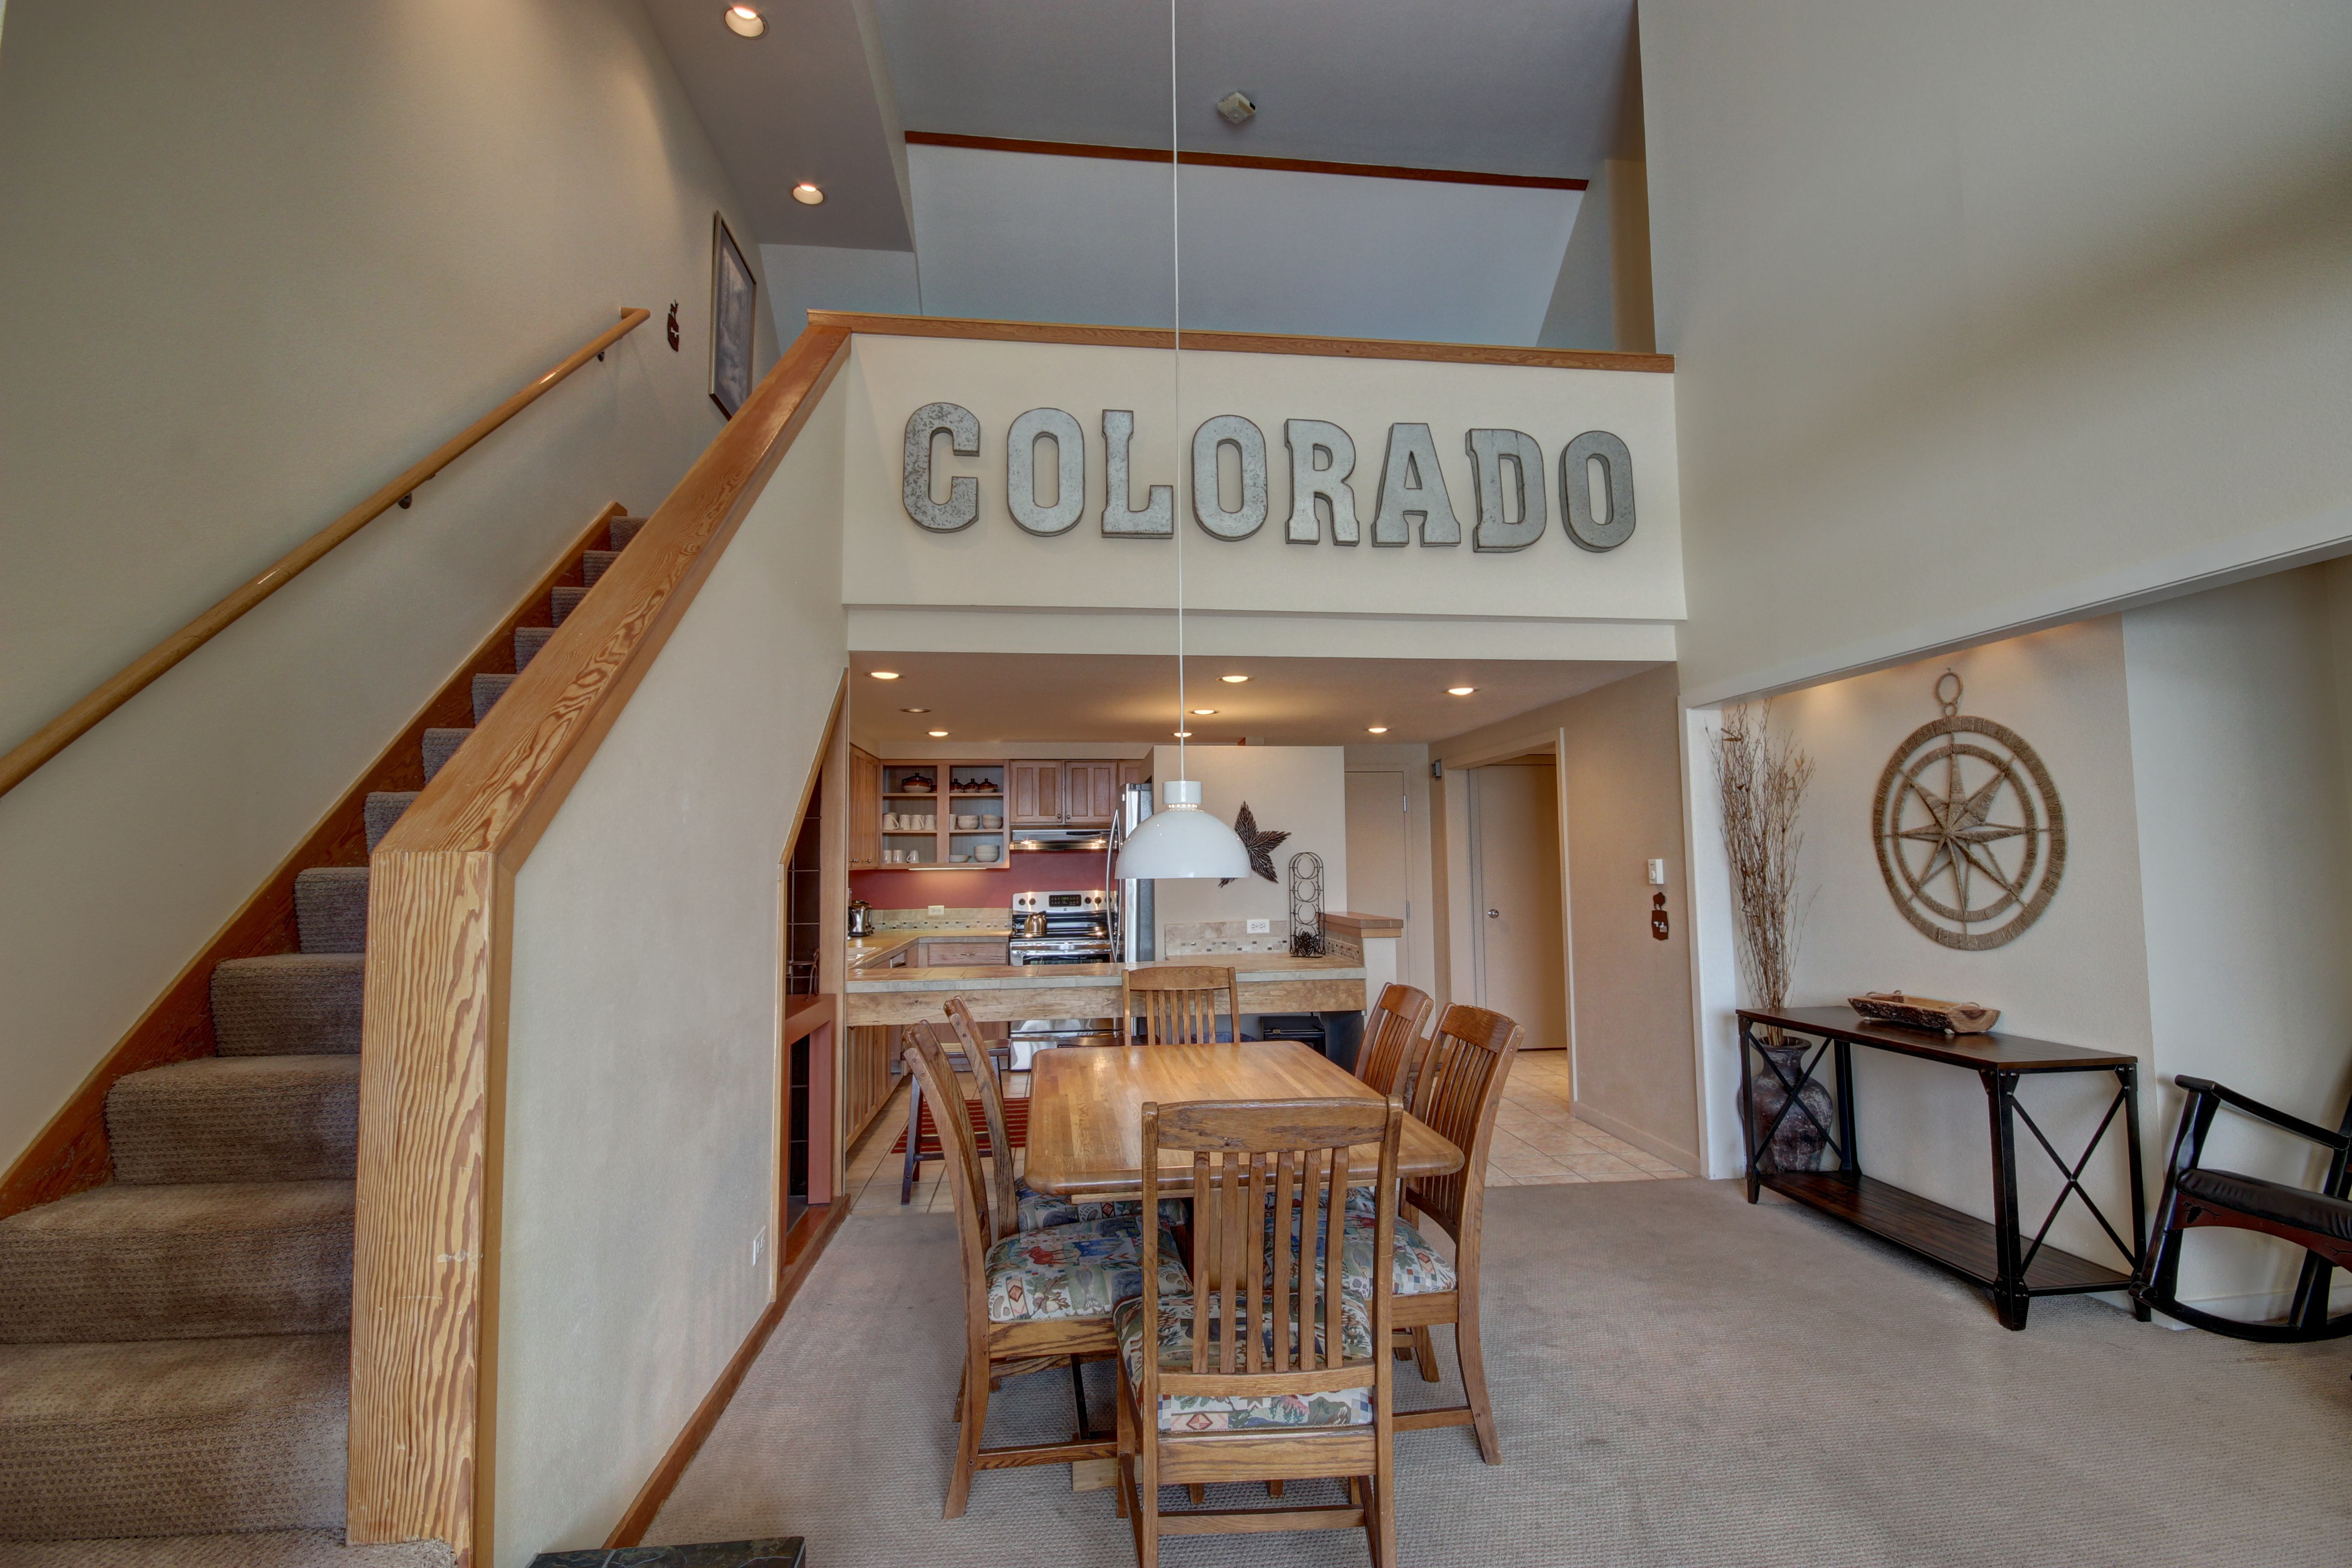 Dining room with an amazing colorado sign